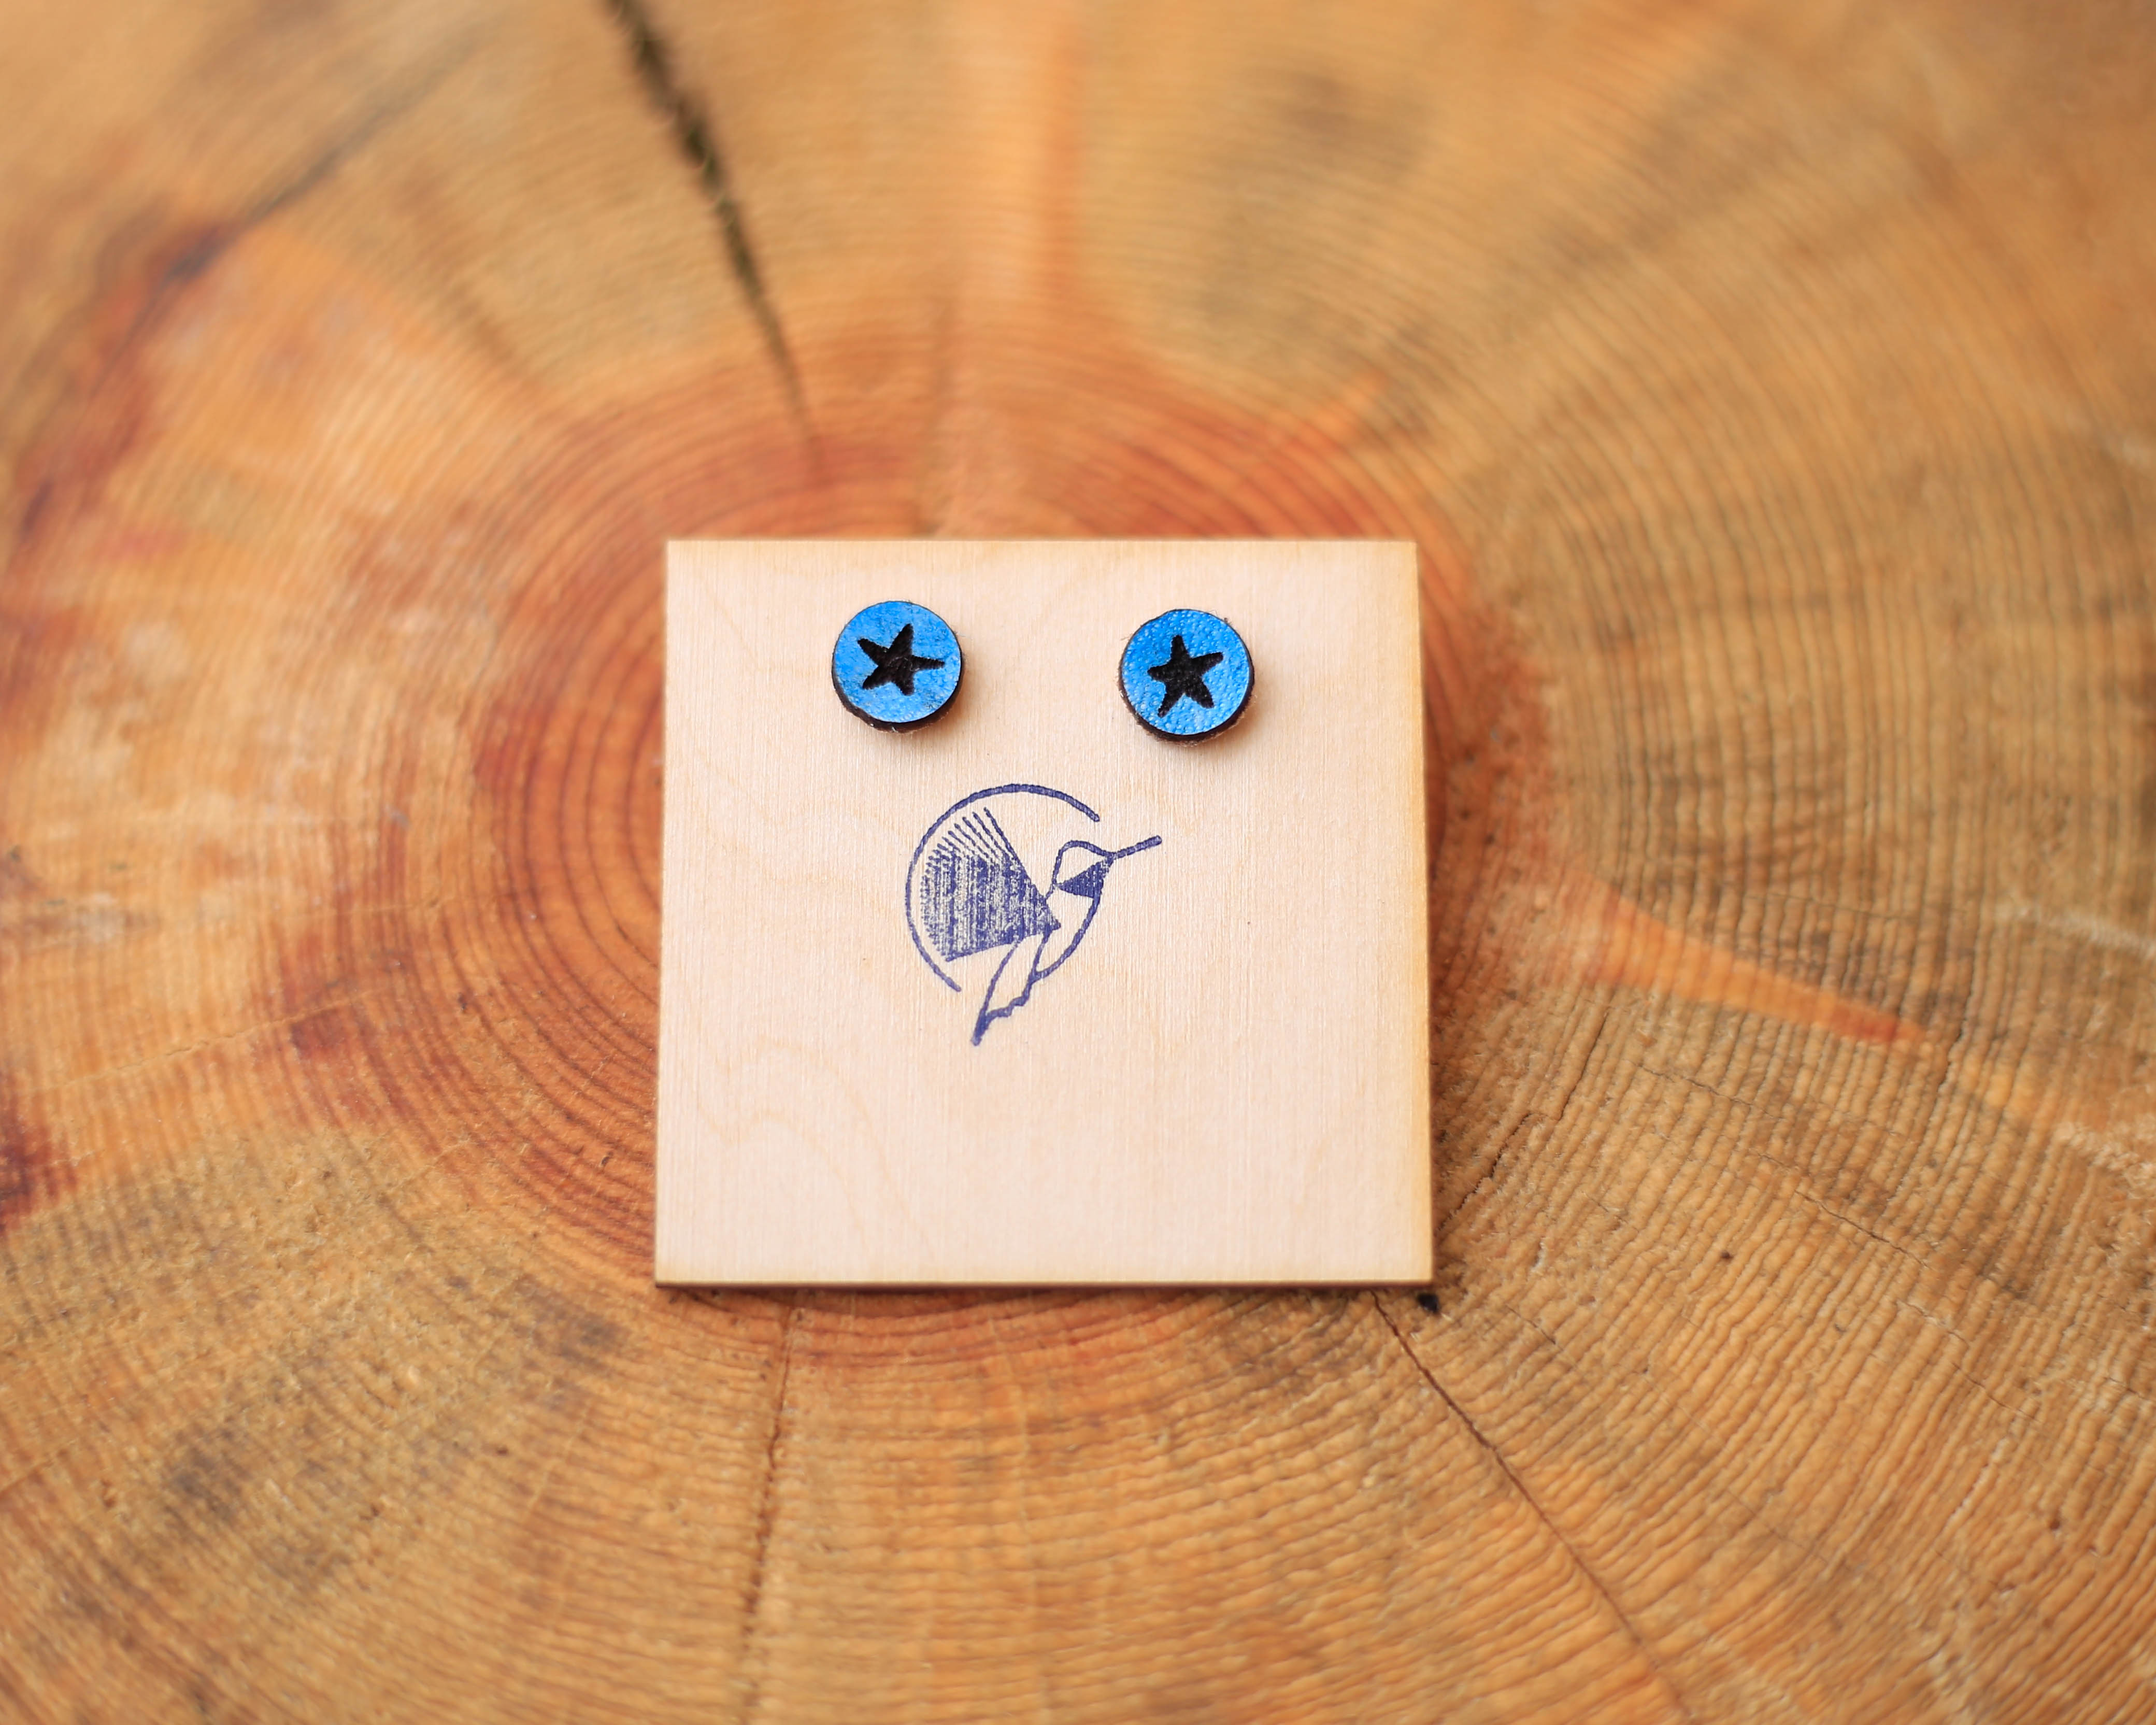 The Blue Star Collection earrings